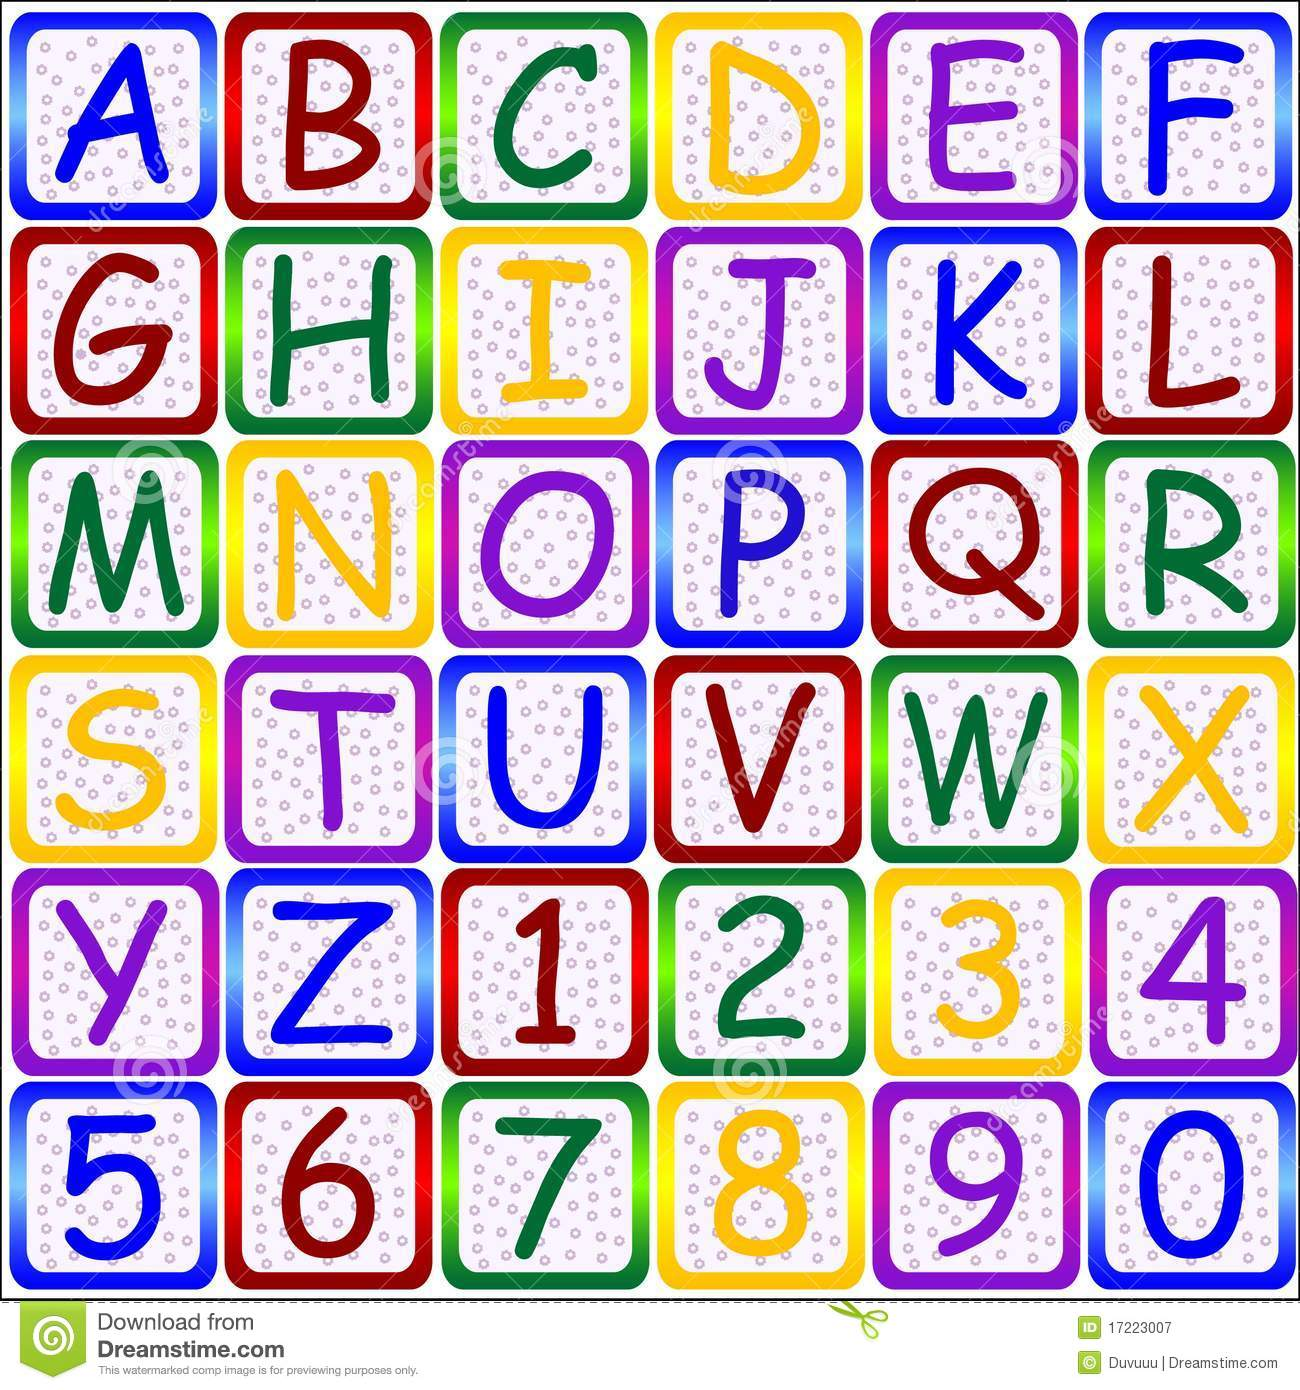 abc letters 123 numbers stock illustration illustration of alphabet